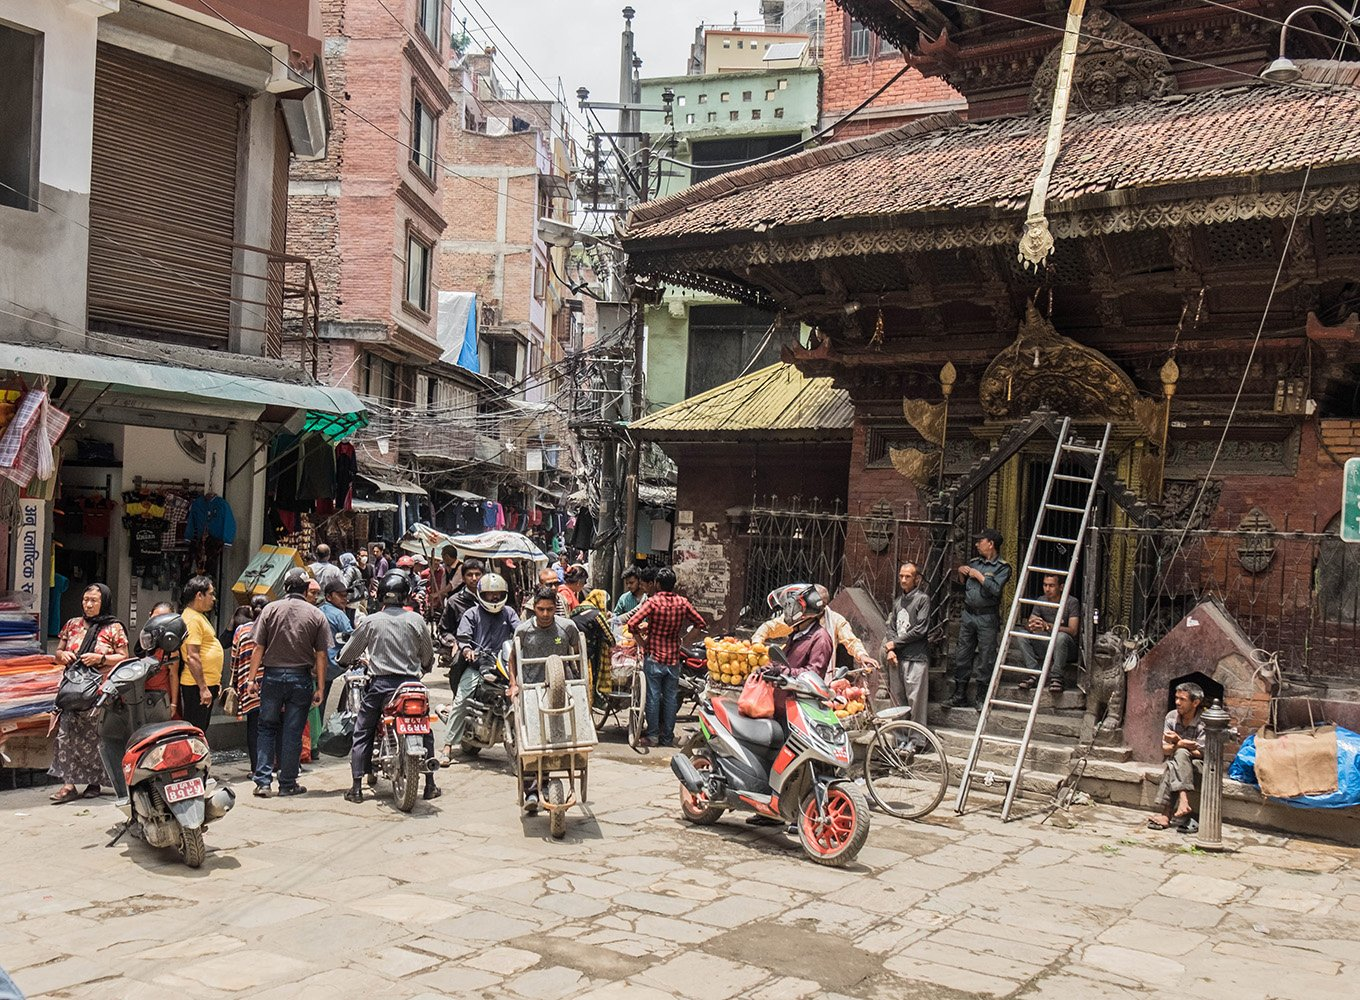 Wondering where you can find the best Nepali momos in Kathmandu? Come along for a foodtour to discover them & other Nepali culinary delights.